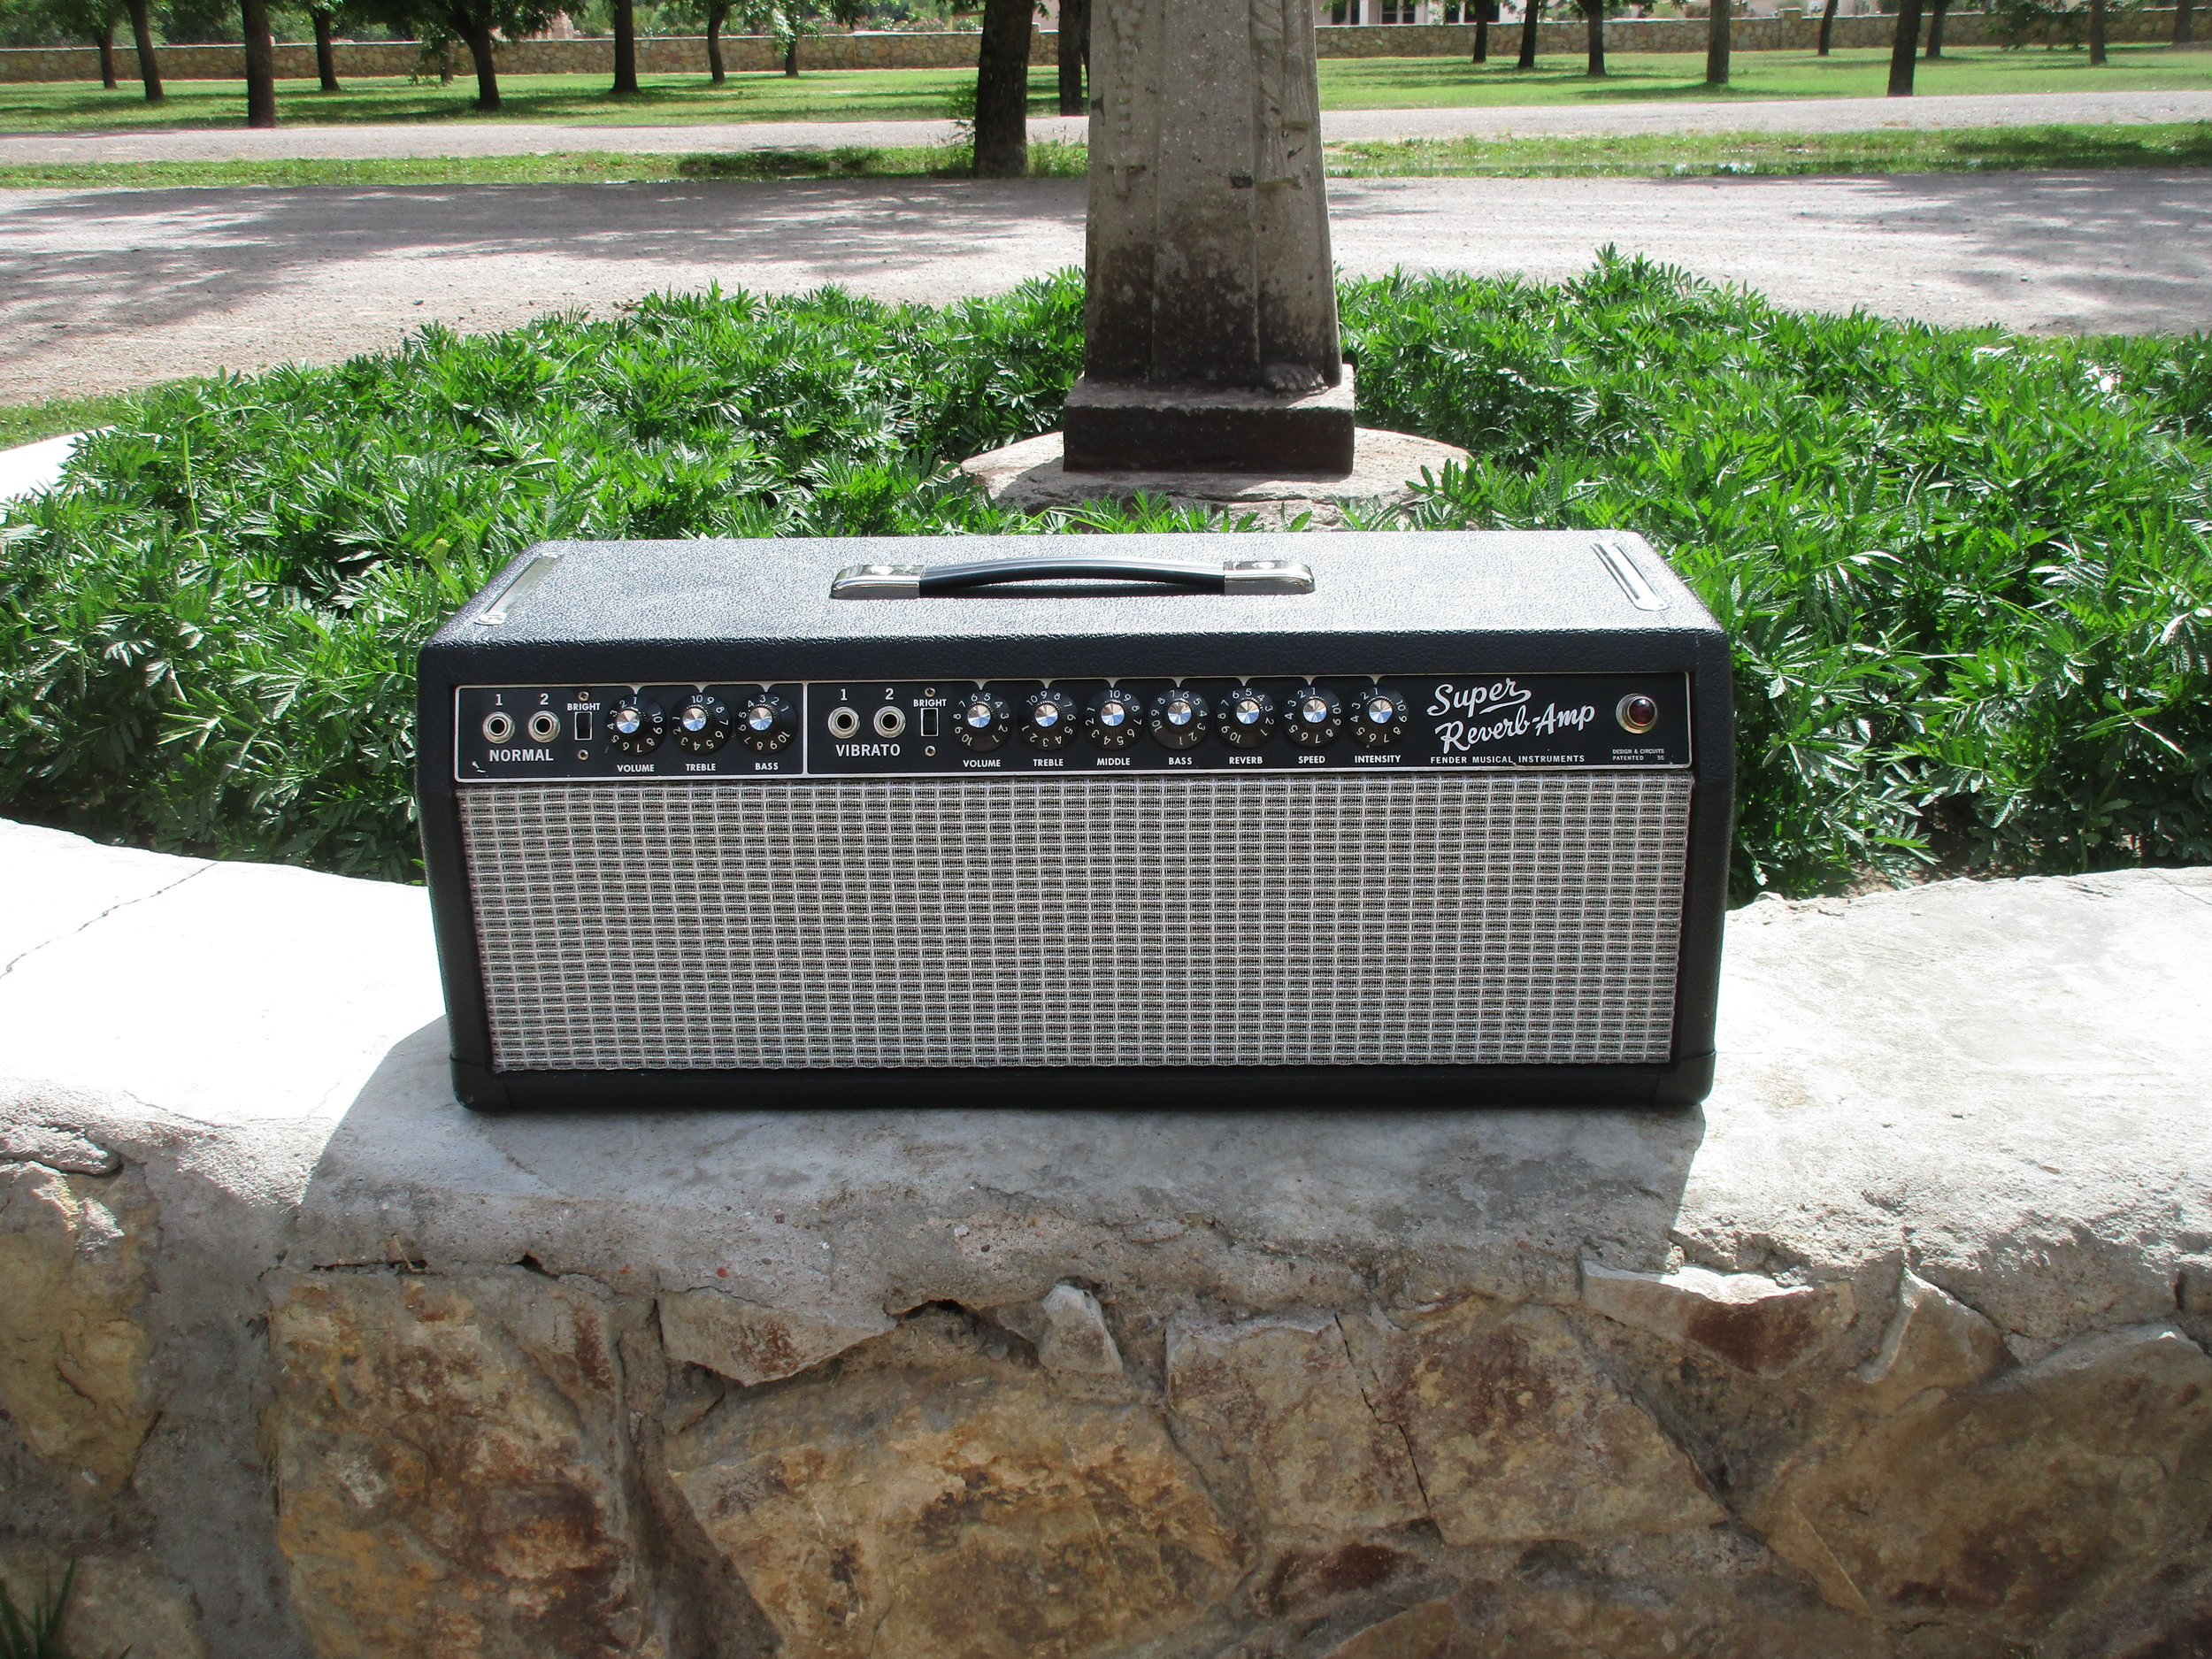 """This 1966 Fender Super Reverb had been put into a head case but came in with low power and noise problems. It took some extensive electronics restoration but now it sounds great. The owner wrote me after getting it back:  """"Carl,  I am blown away over what I am hearing coming out of my amp. You have more than surpassed my expectations— the tone is outstanding! Jangly, crisp, full, harmonically rich and ear pleasing are some of my initial perceptions.You have transformed my mediocre sounding Super Reverb into something above any amp I have ever heard in this style and beyond.  Thank You so much!  This did not cost much and the results are literally to die for.  Loyal customer forever.  John"""""""